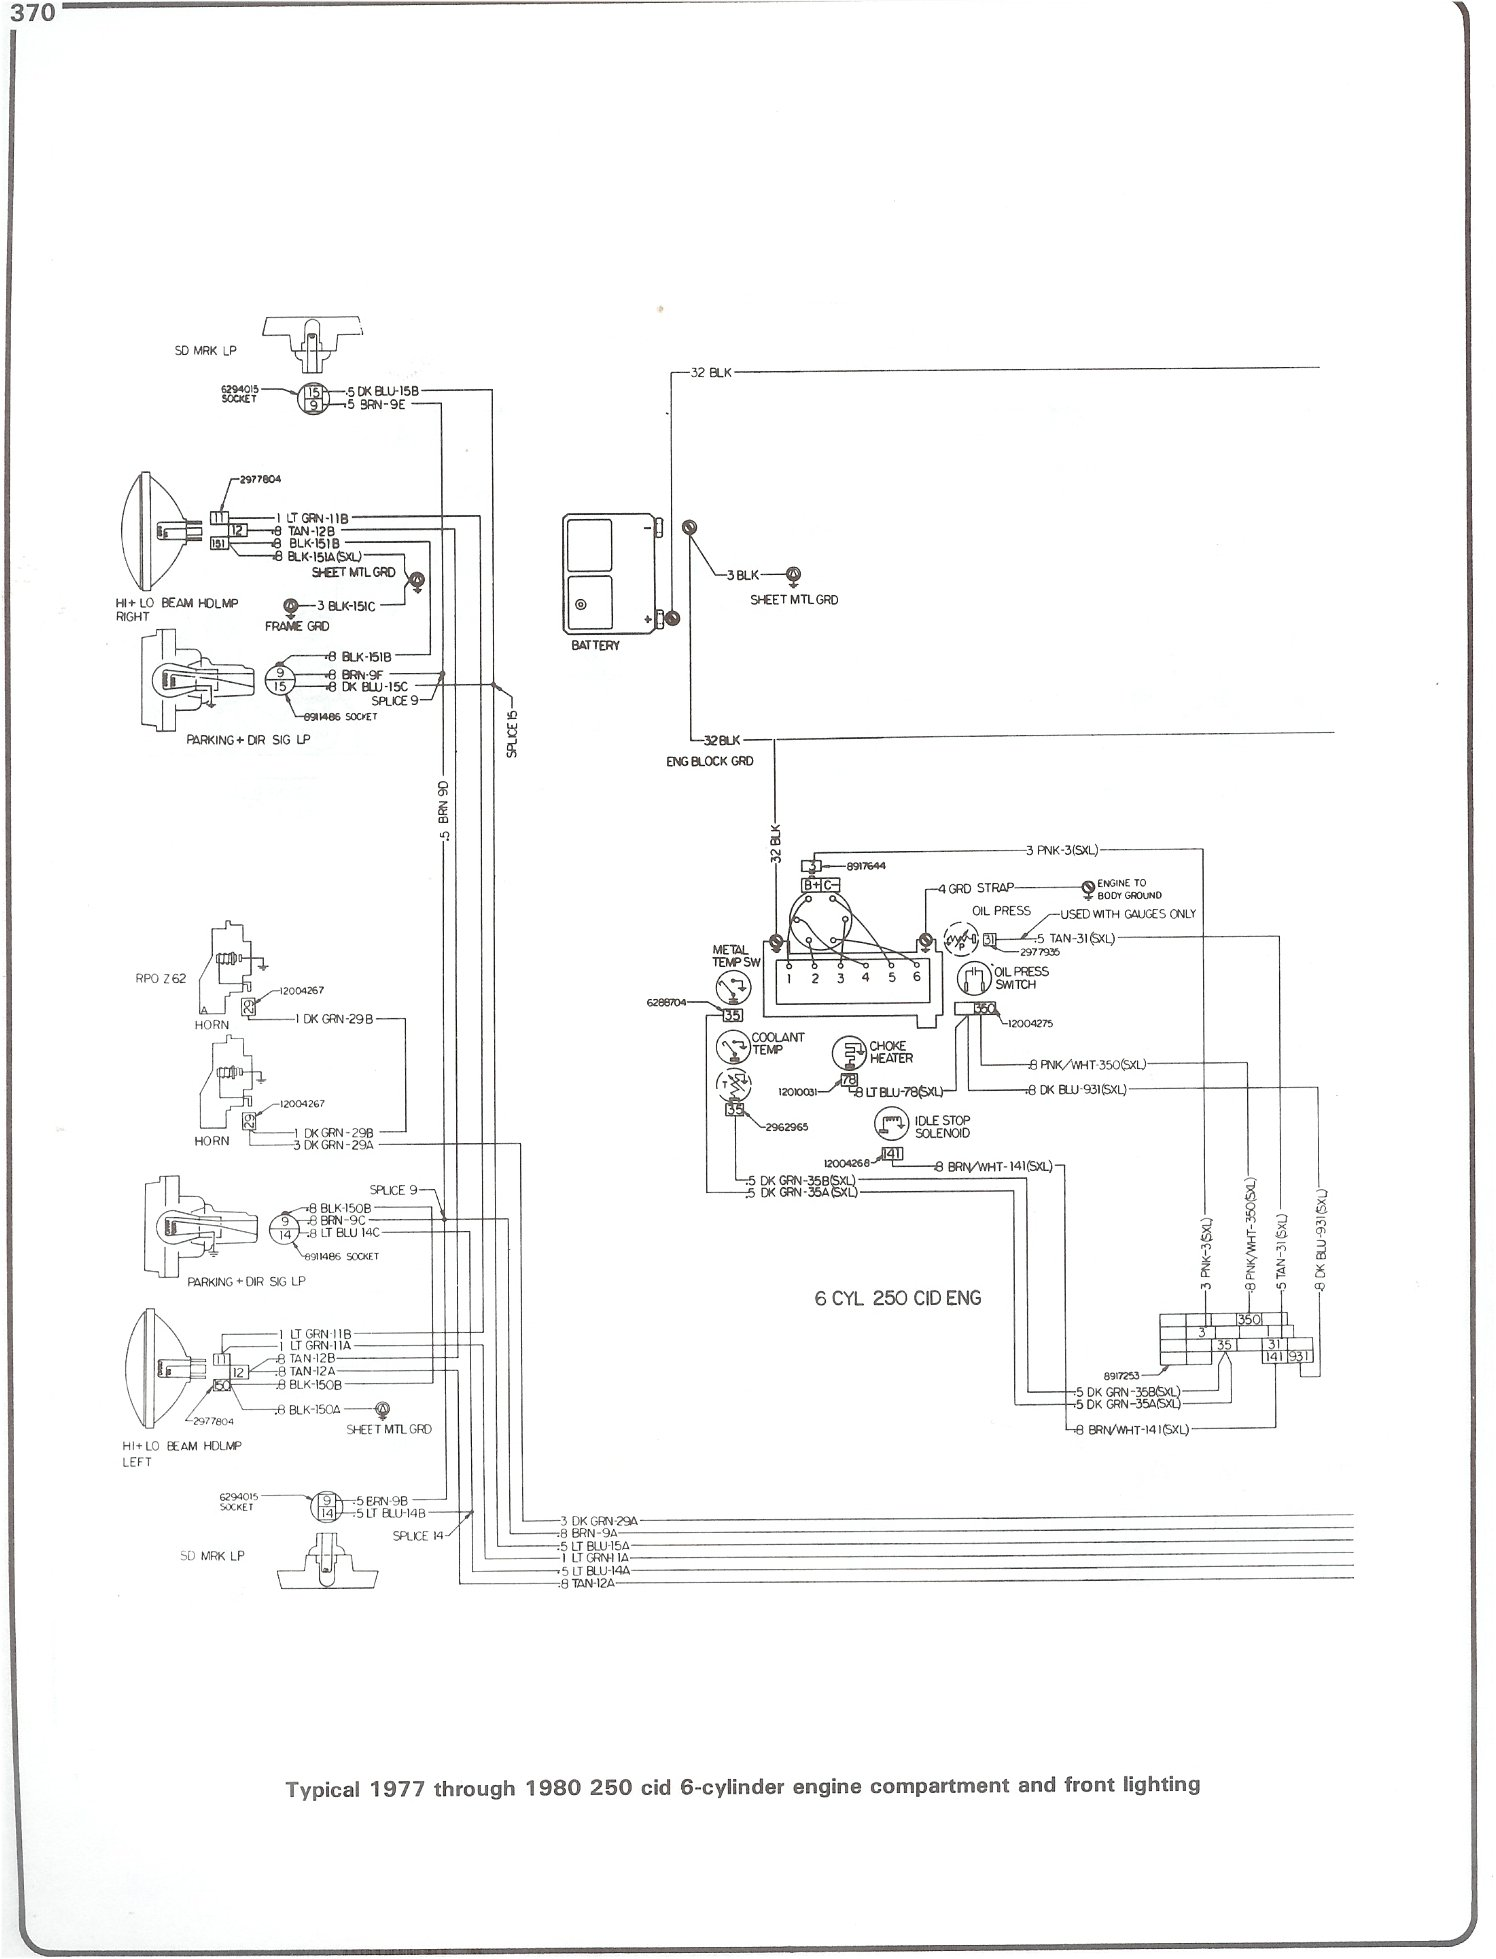 85 Chevy Wiring Diagram Detailed Schematics Diagram 98 Chevy Alternator  Wiring Diagram 85 Chevy Alternator Wiring Diagram